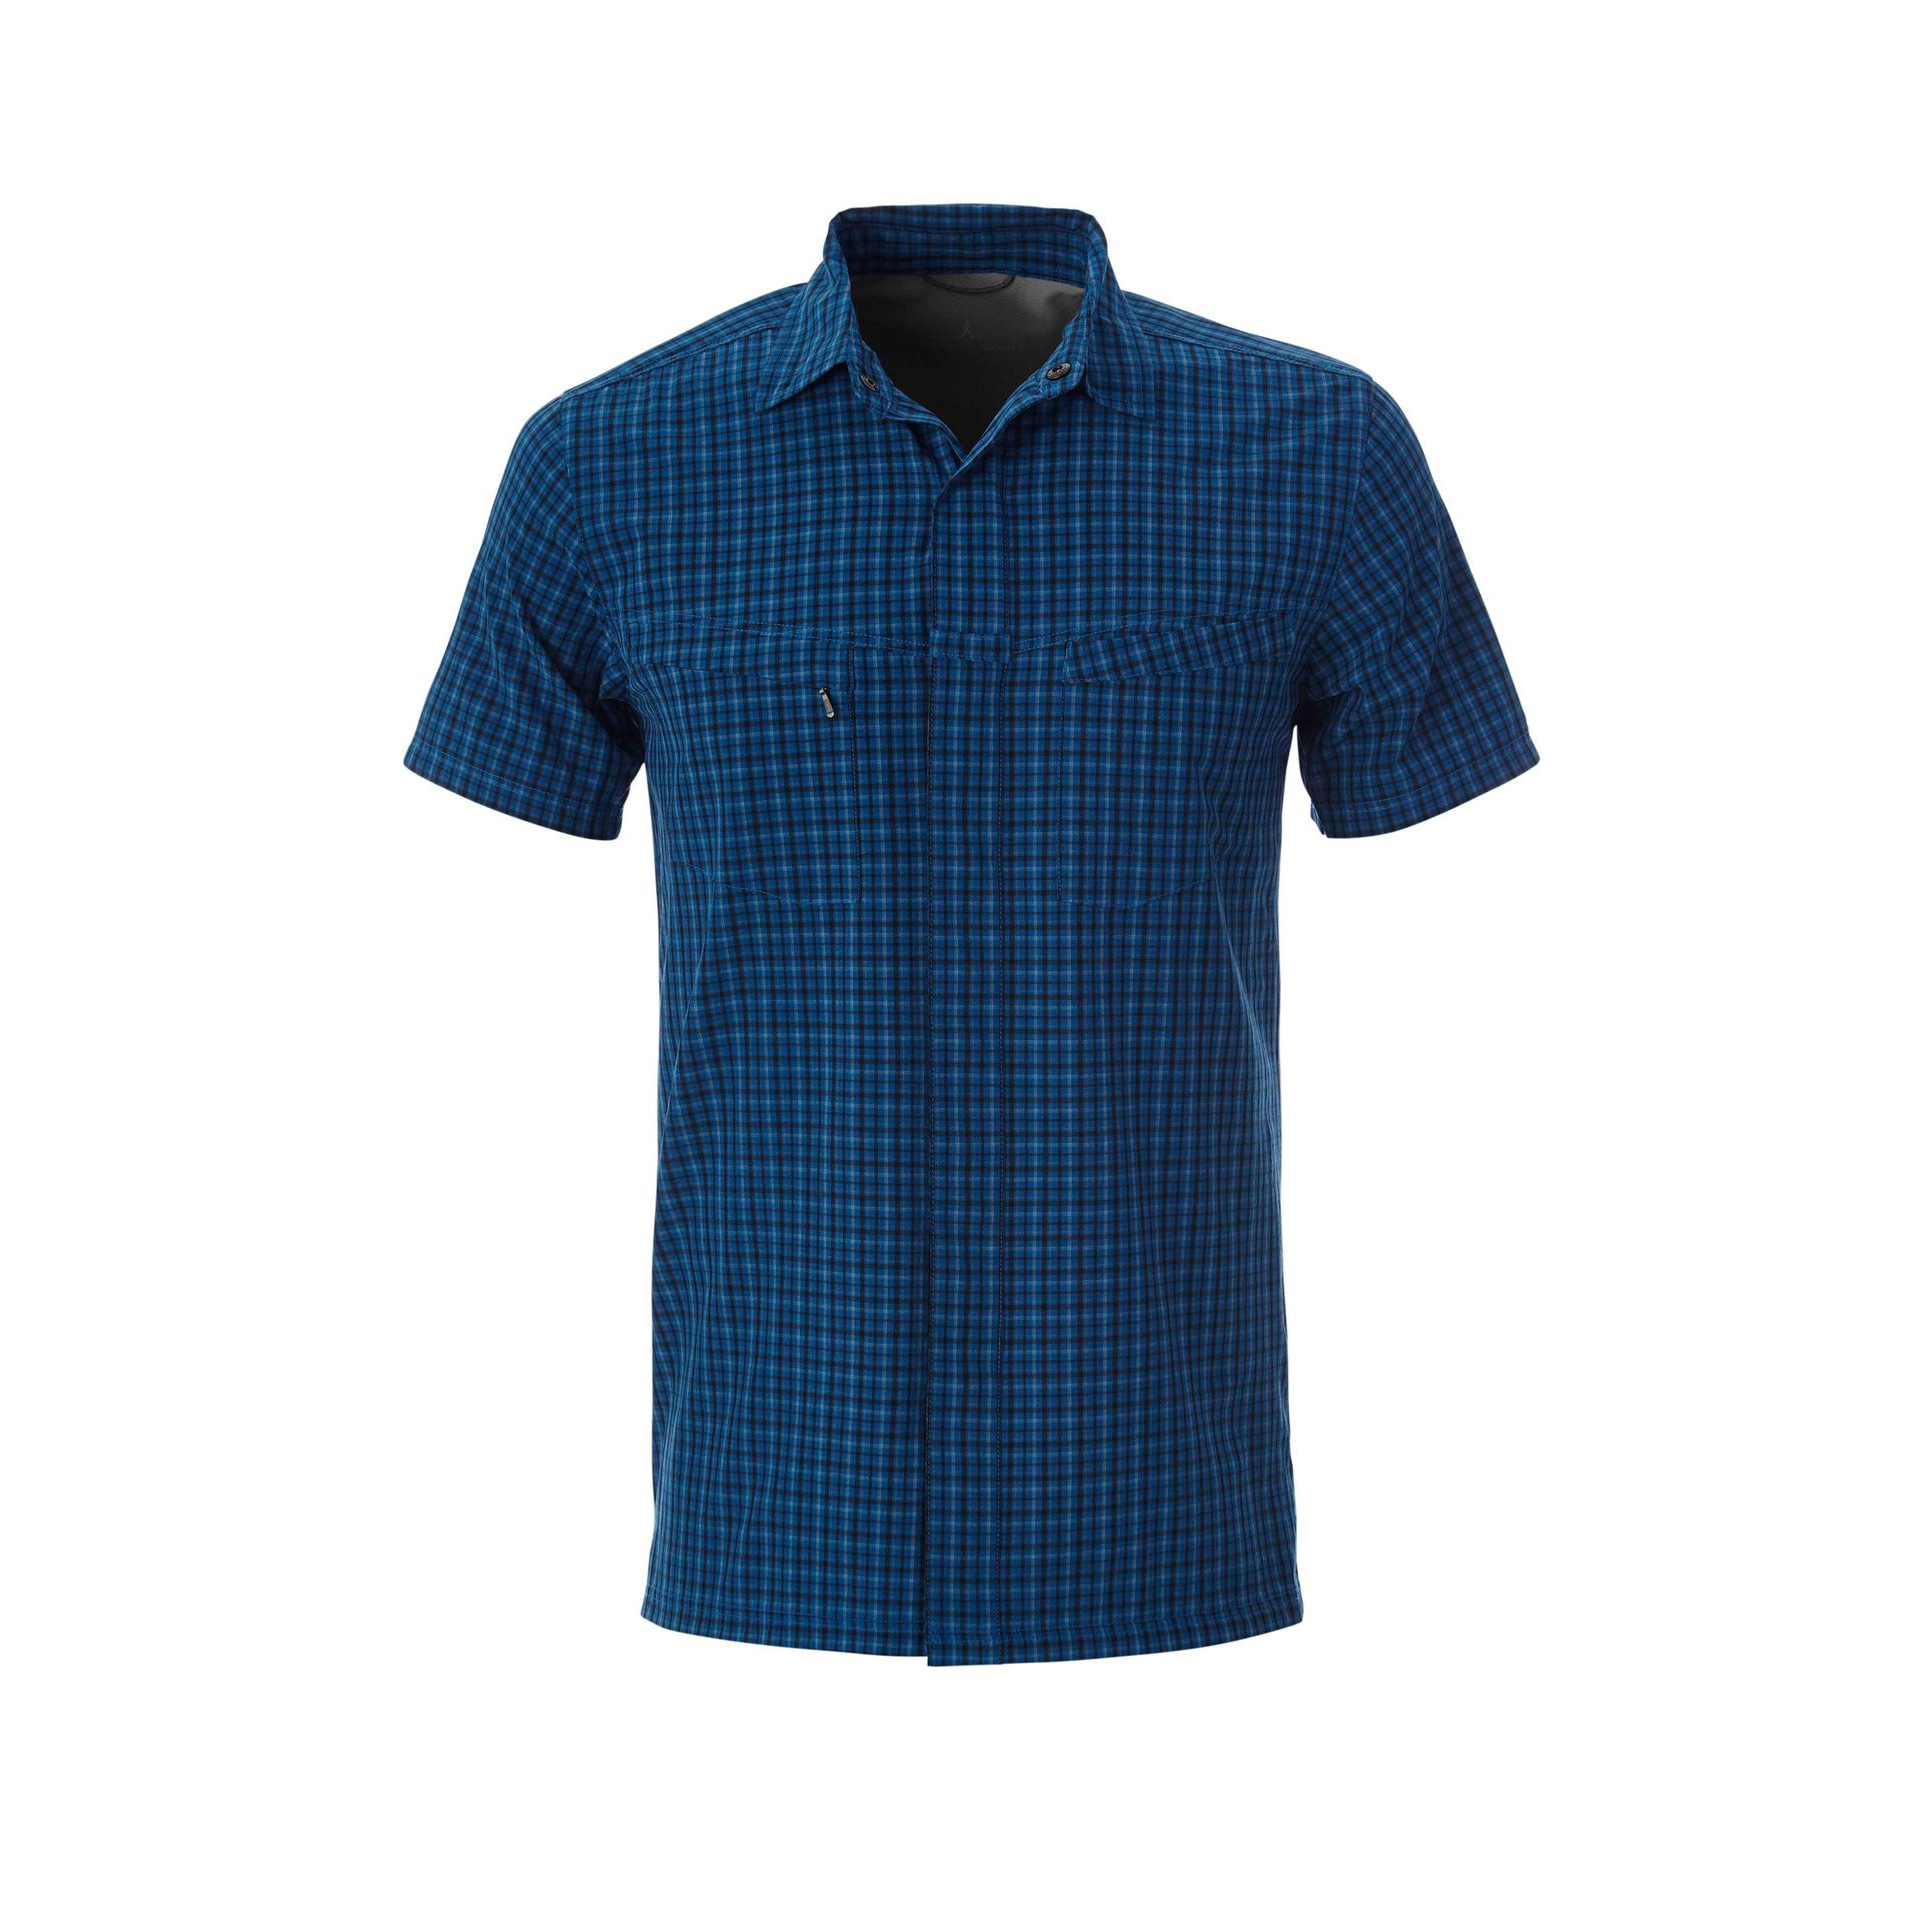 City Traveler Short Sleeve - Men's